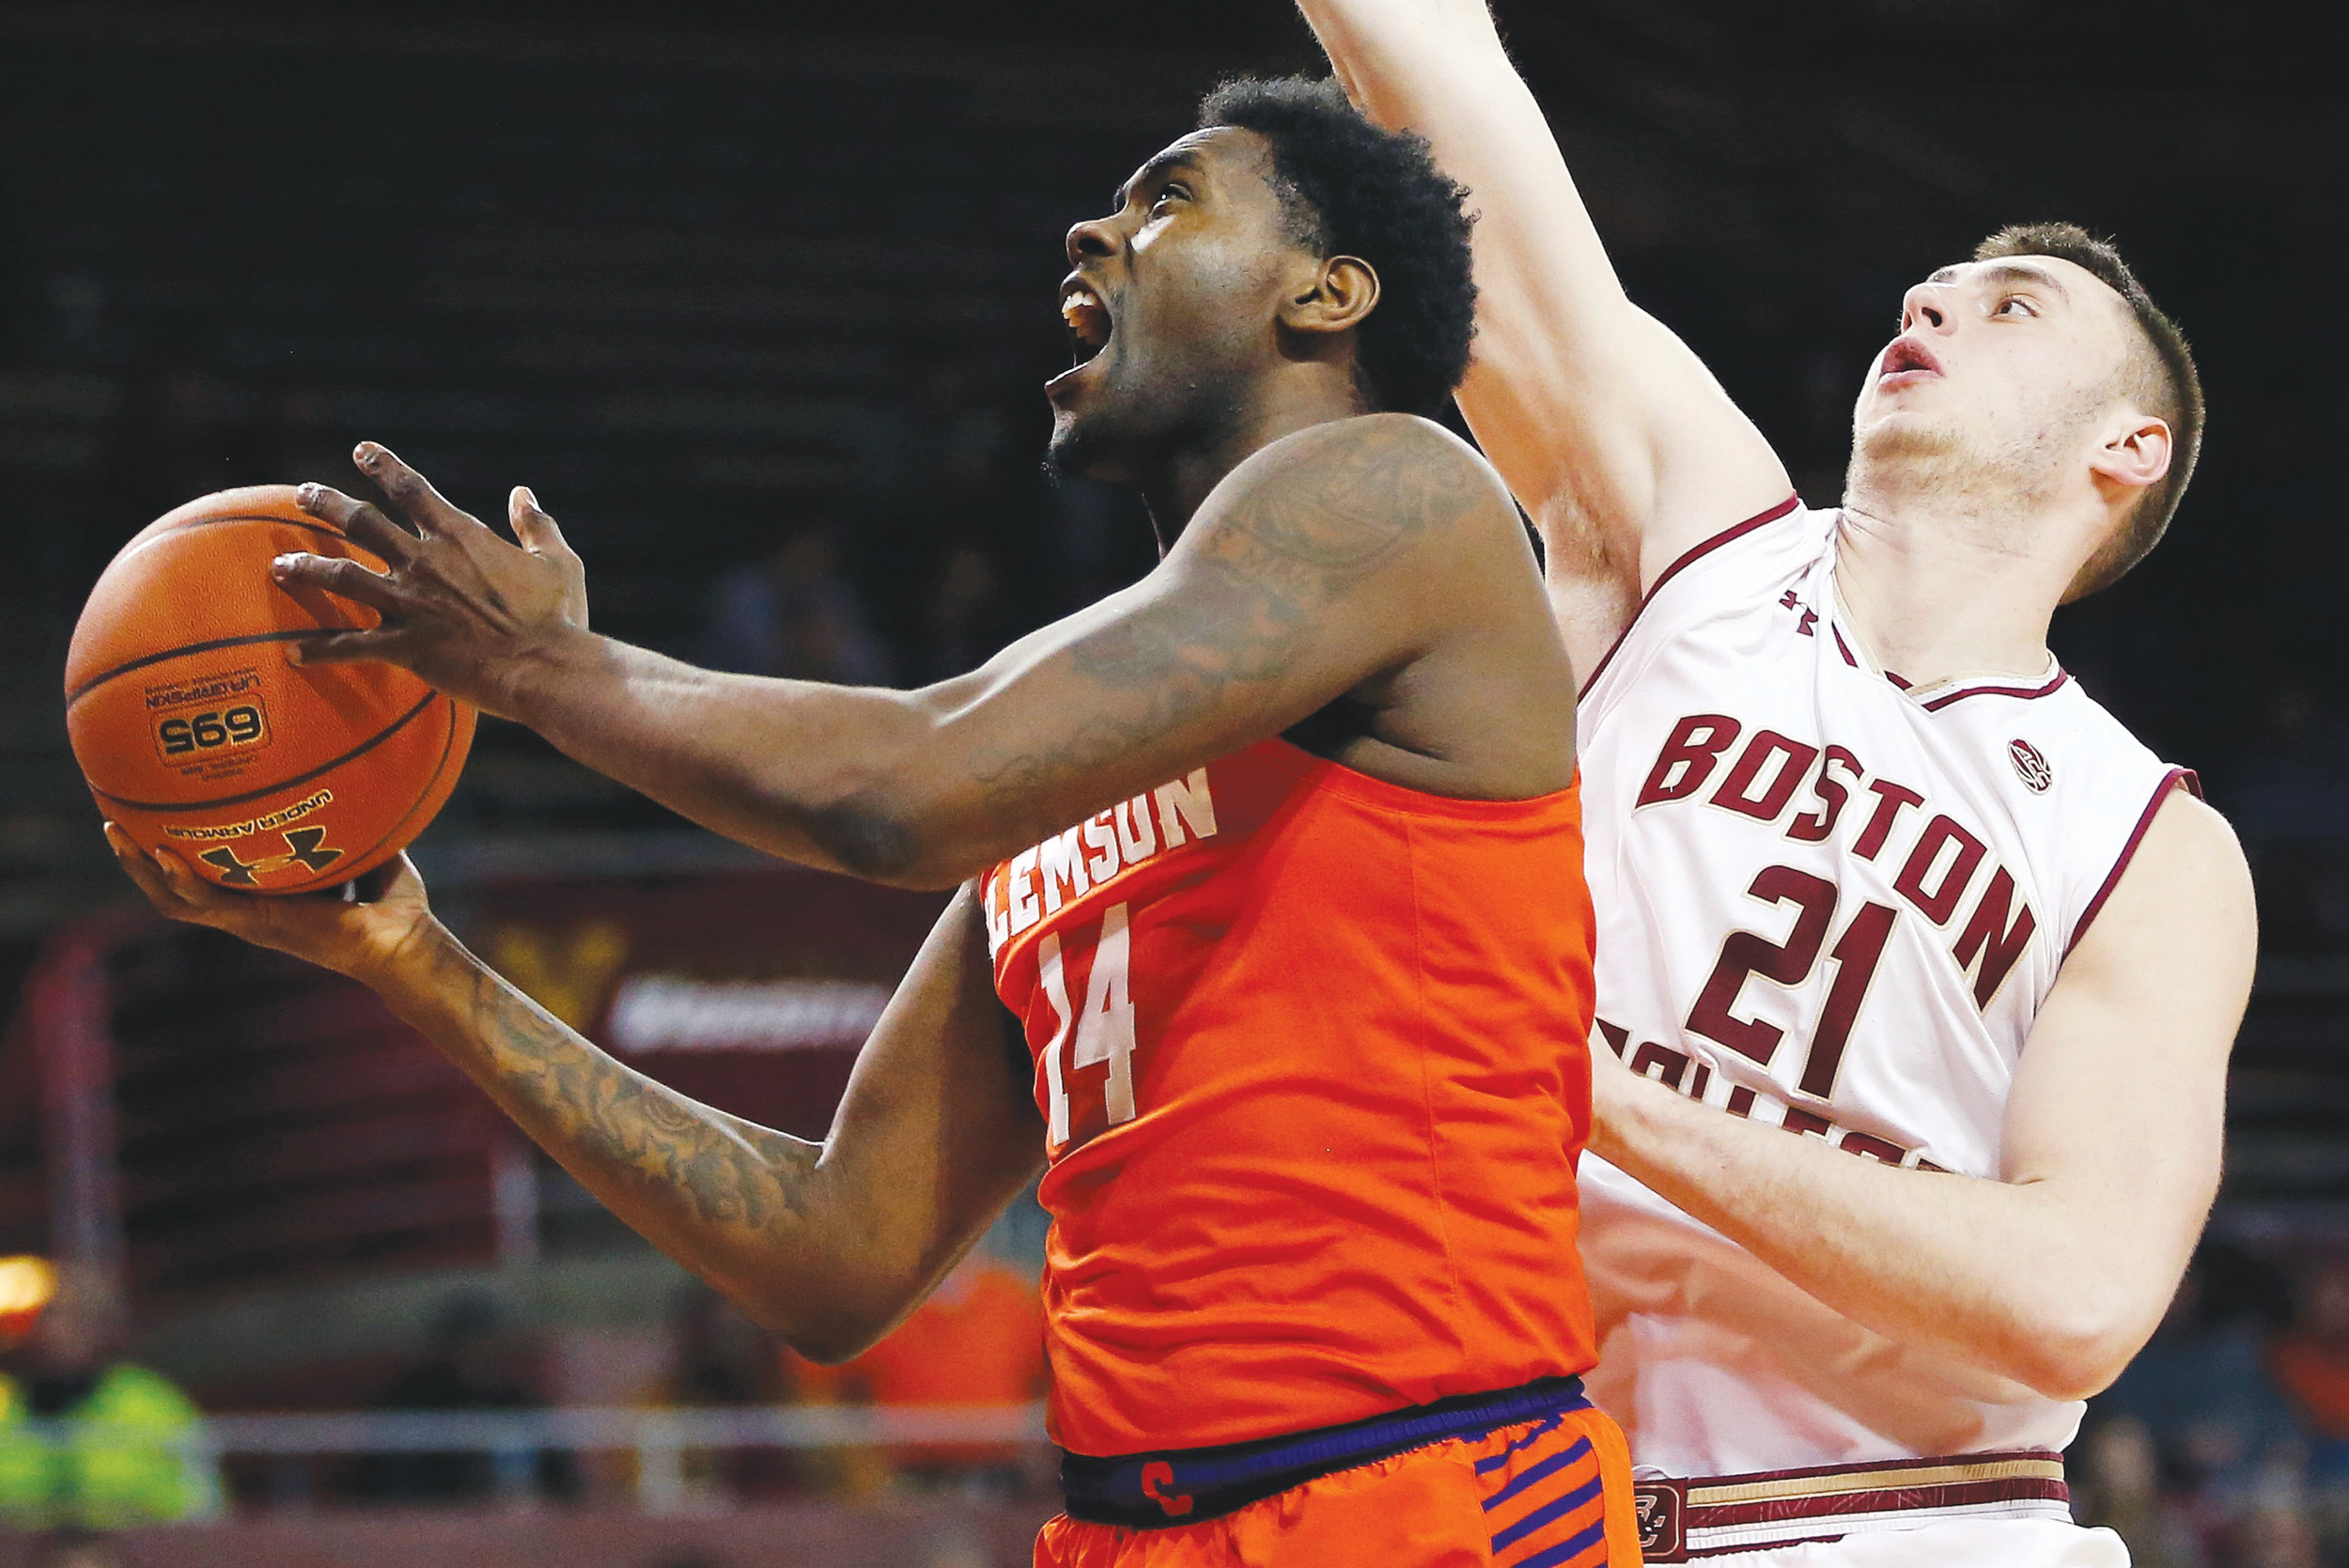 Clemson's Elijah Thomas (14) shoots in front of Boston College's Nik Popovic (21) during the Tigers' 74-70 win on Wednesday in Boston.